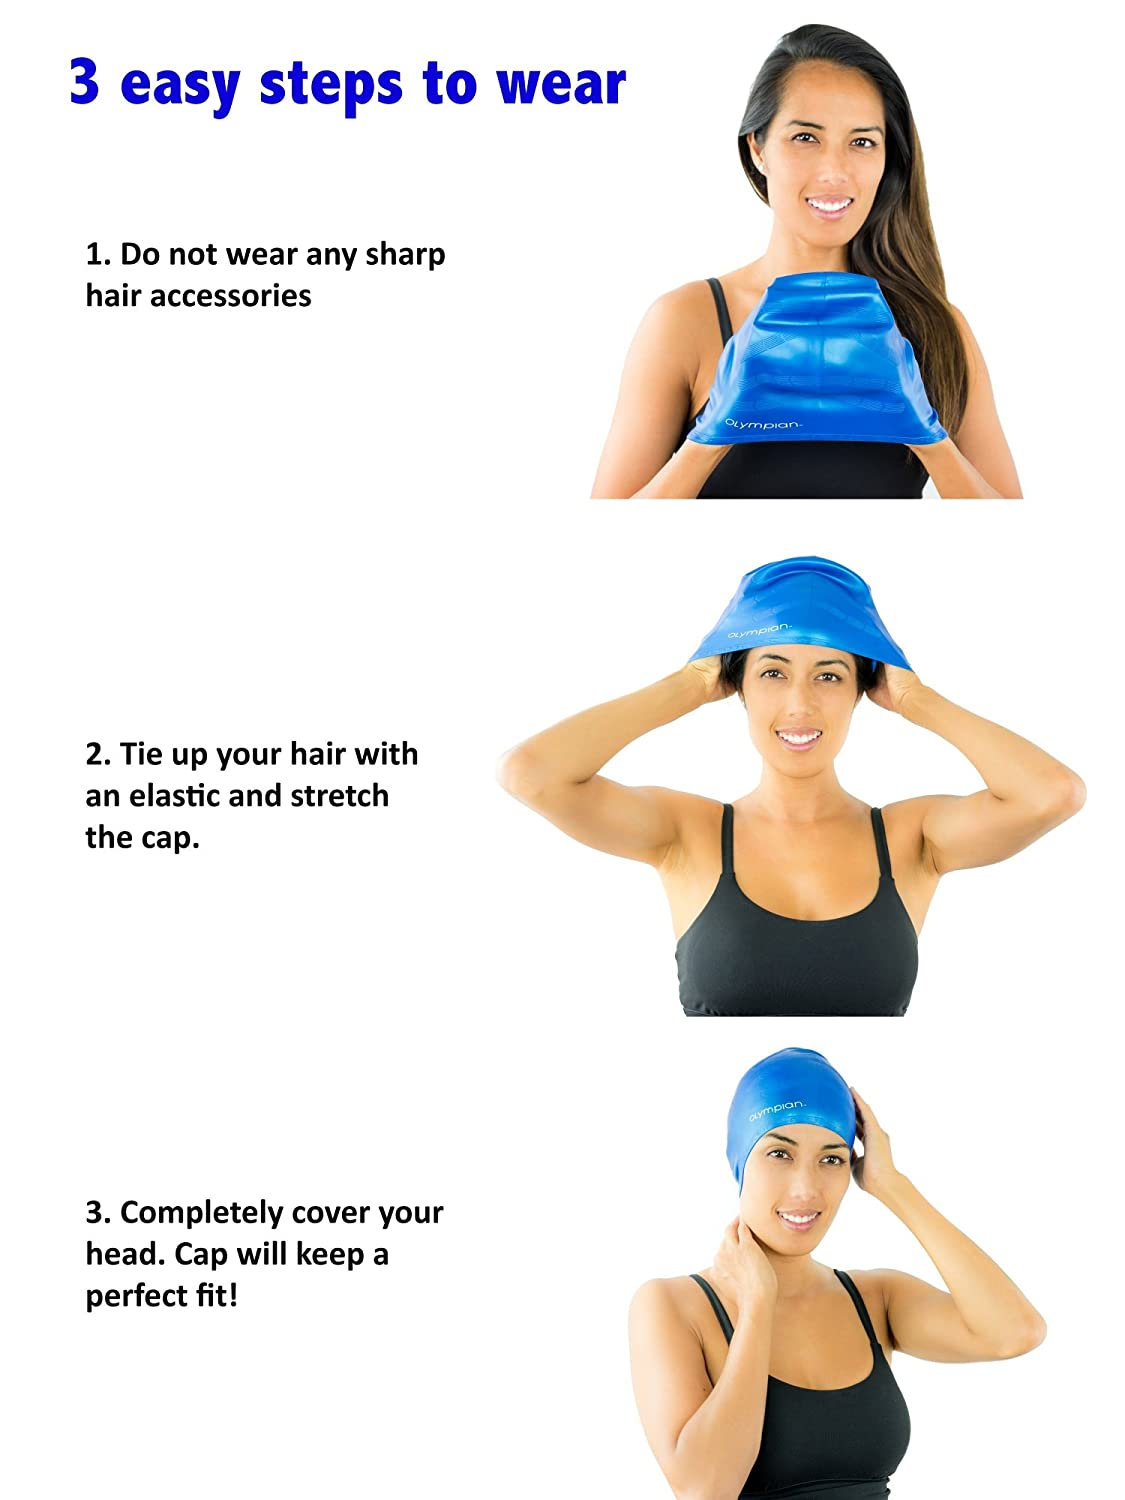 a01168717ea Long Hair Swim Cap - Swimming Caps for Women Men Girls Boys- Youth  Adult  Casual and Competitive Swimming - Silicone ...